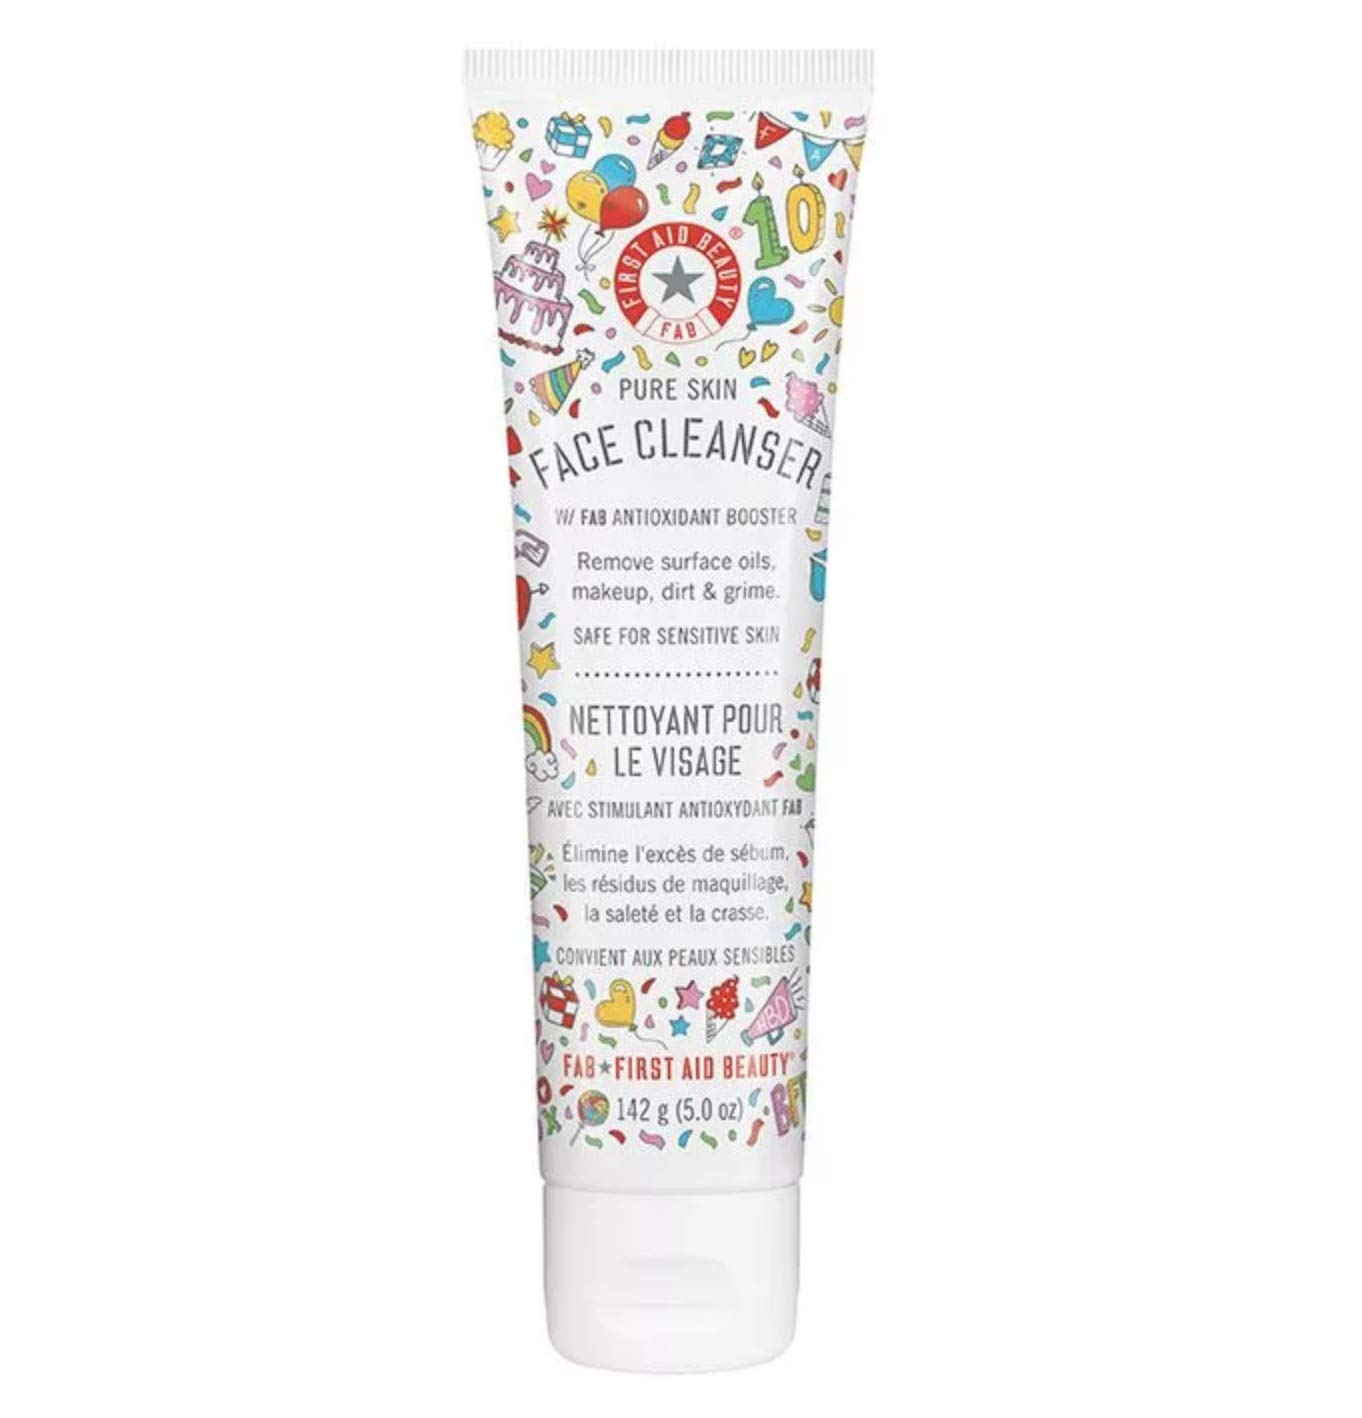 First Aid Beauty Pure Skin Face Cleanser, Limited Edition, 5 oz